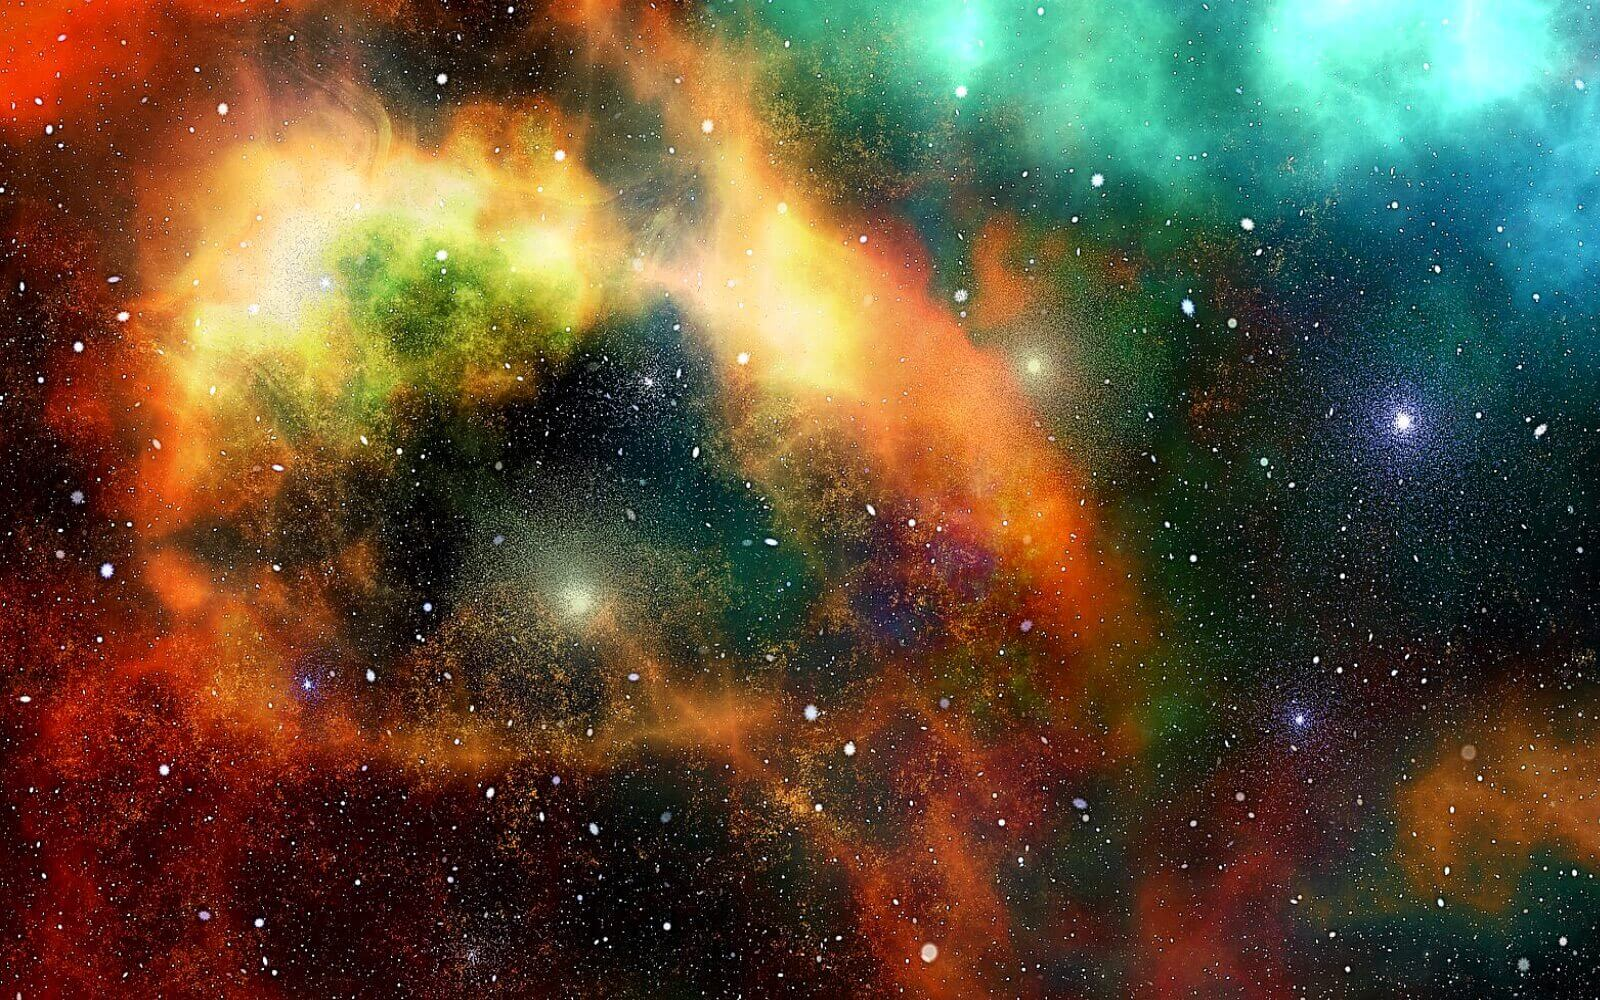 A colourful picture of space